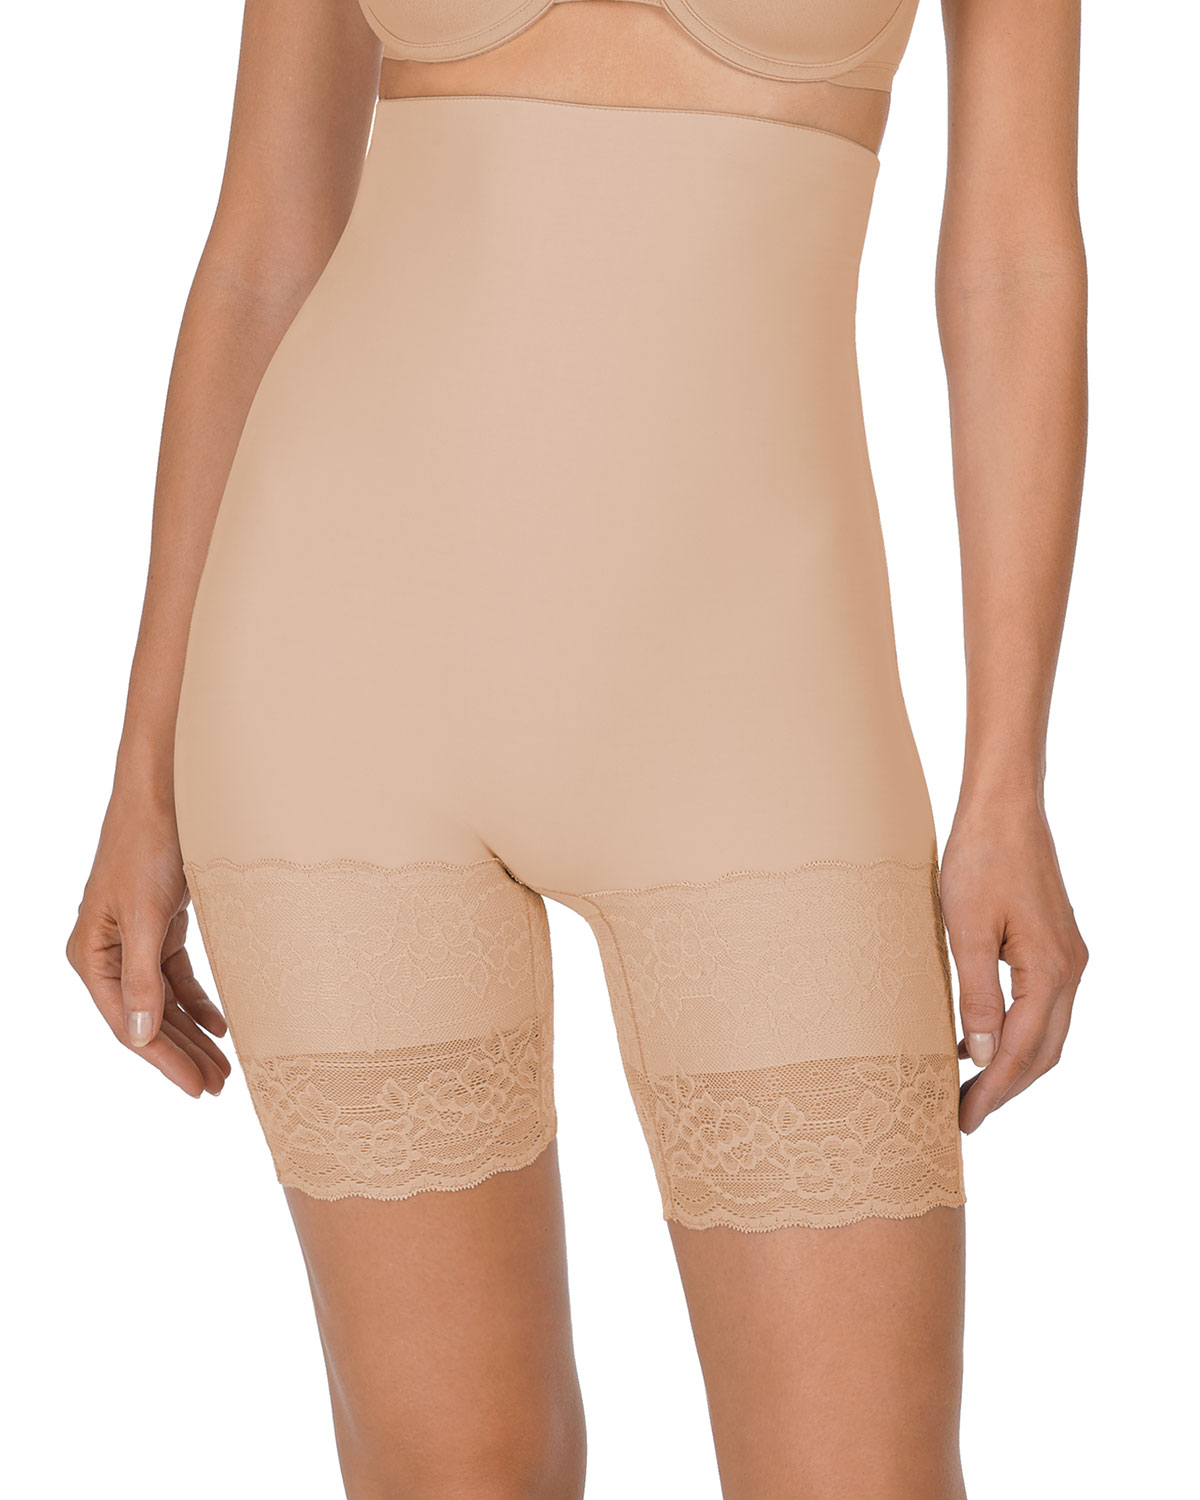 Natori Tops PLUSH HIGH-WAIST THIGH-SLIMMER SHAPER